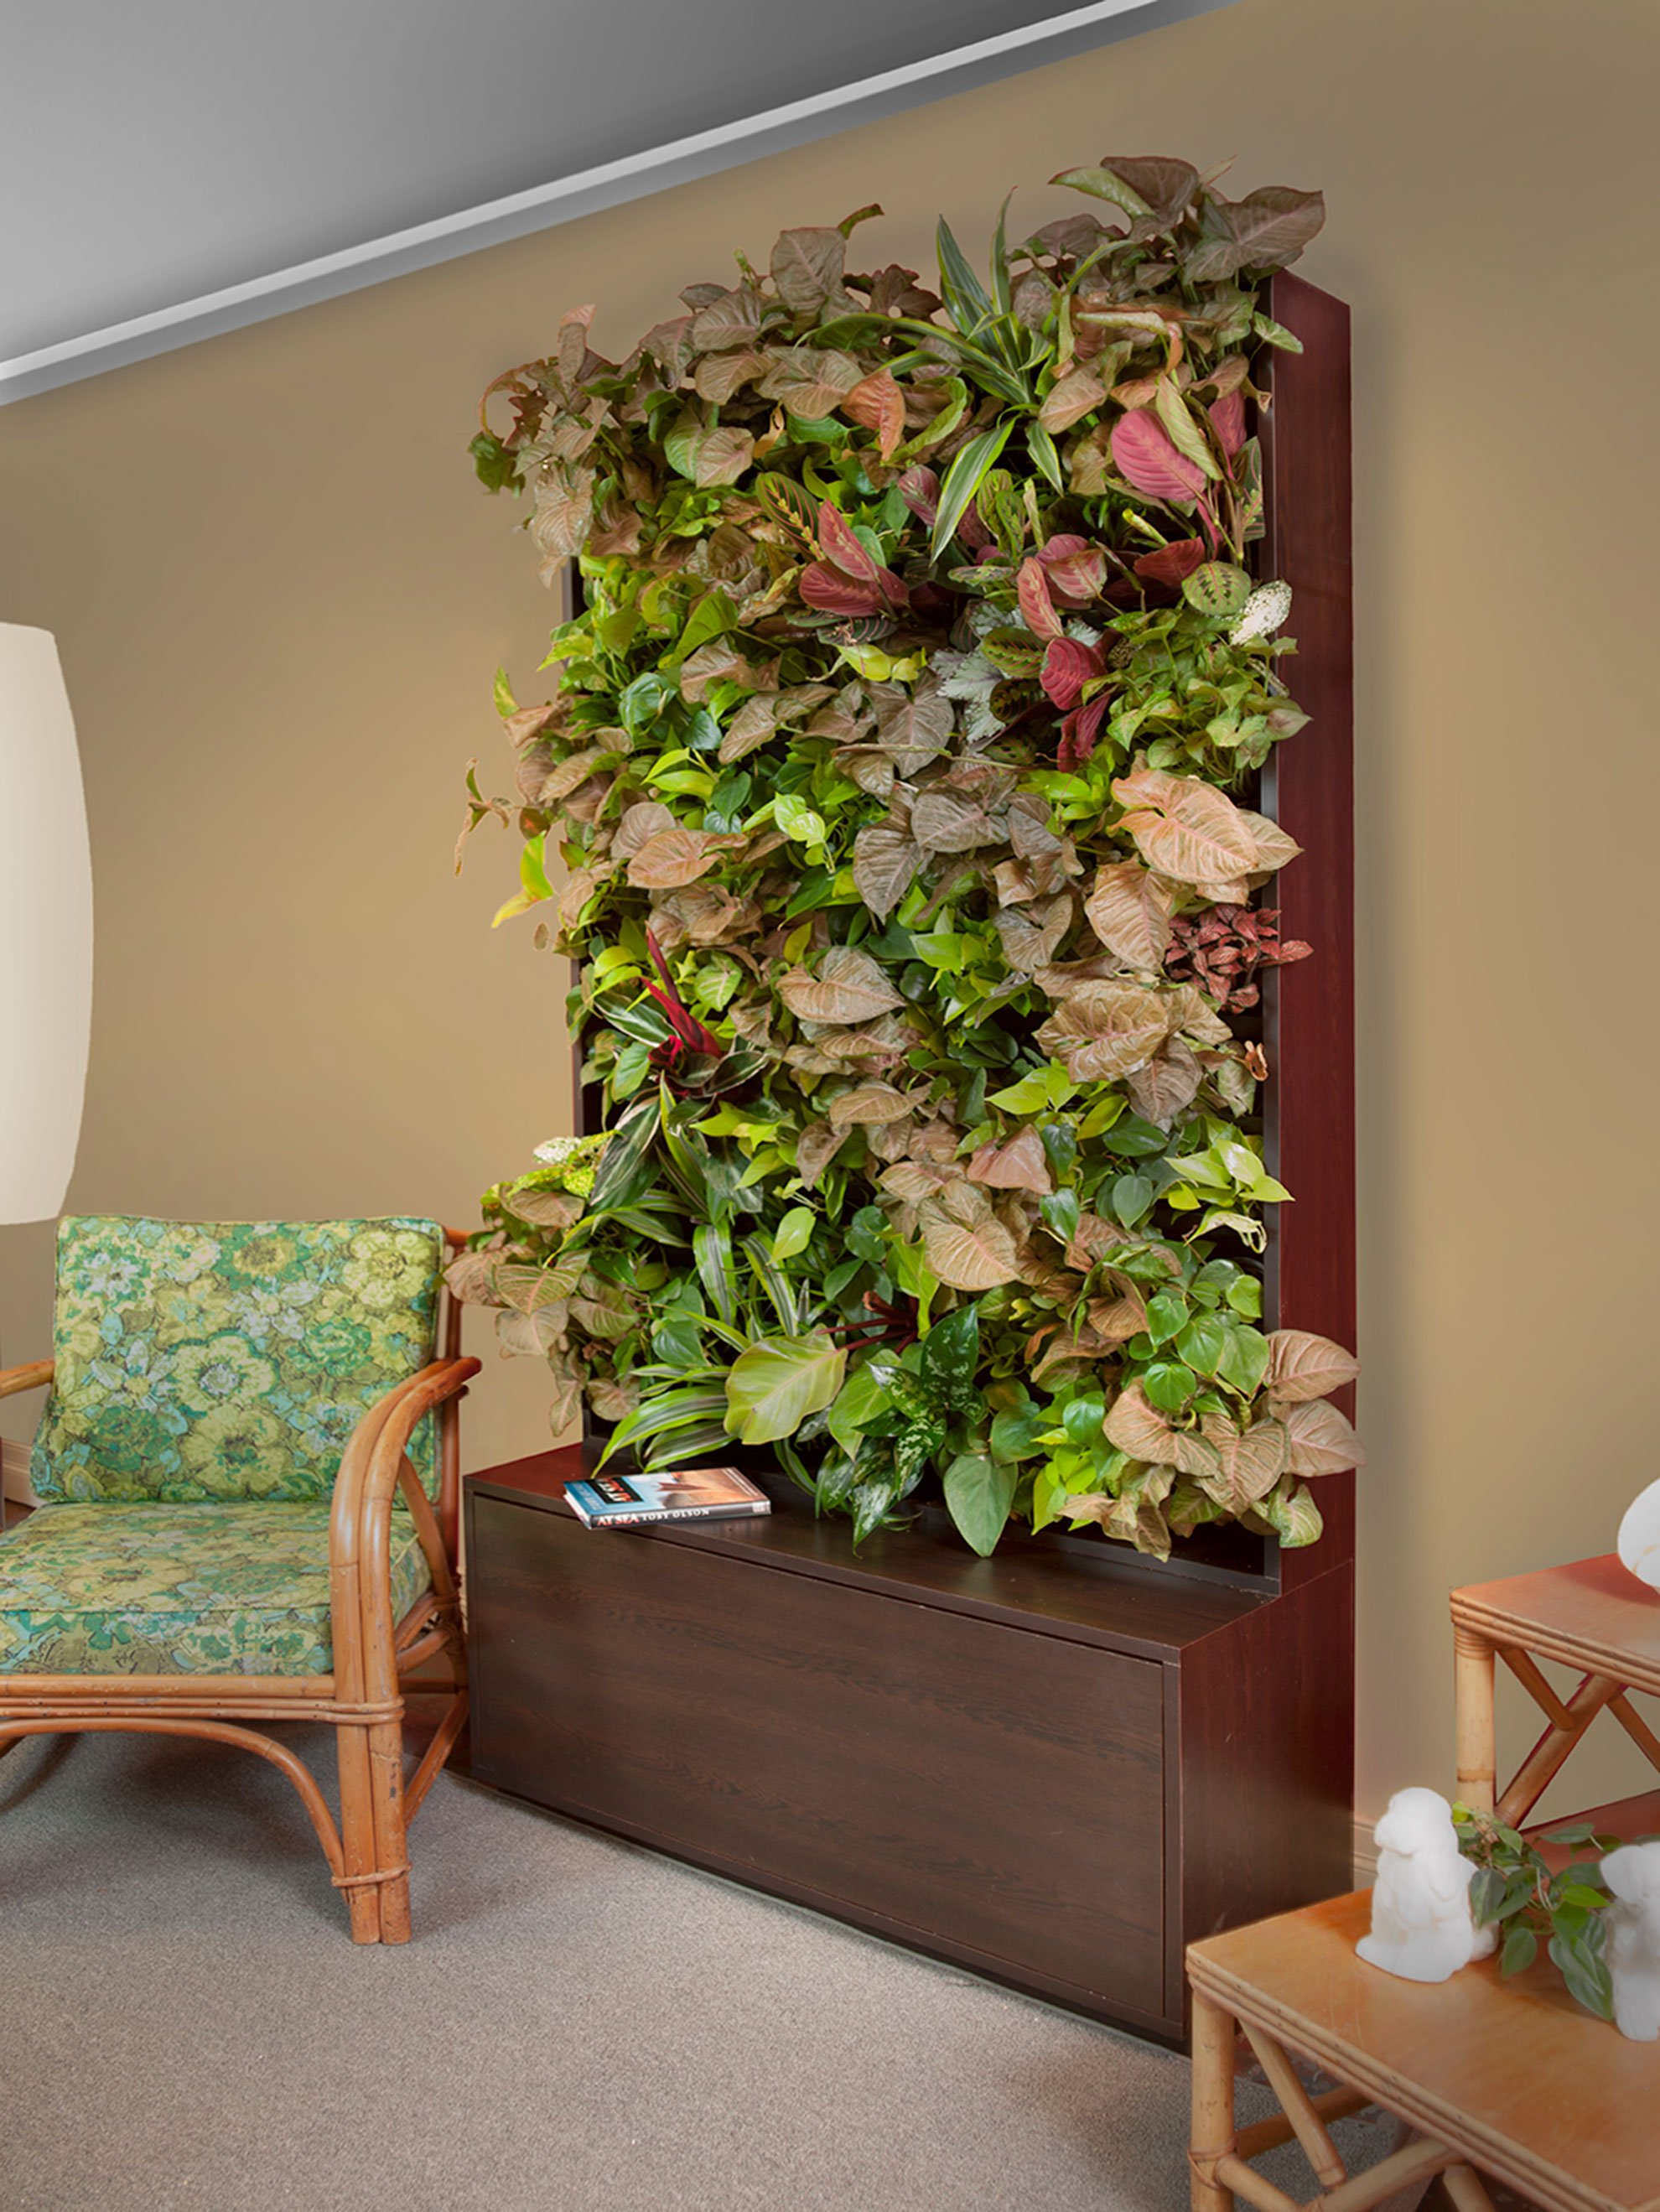 Green Walls Create Living Art That Purifies The Air And Adds A Pop Of Color  To The Typically Drab Office Or Function Hall.